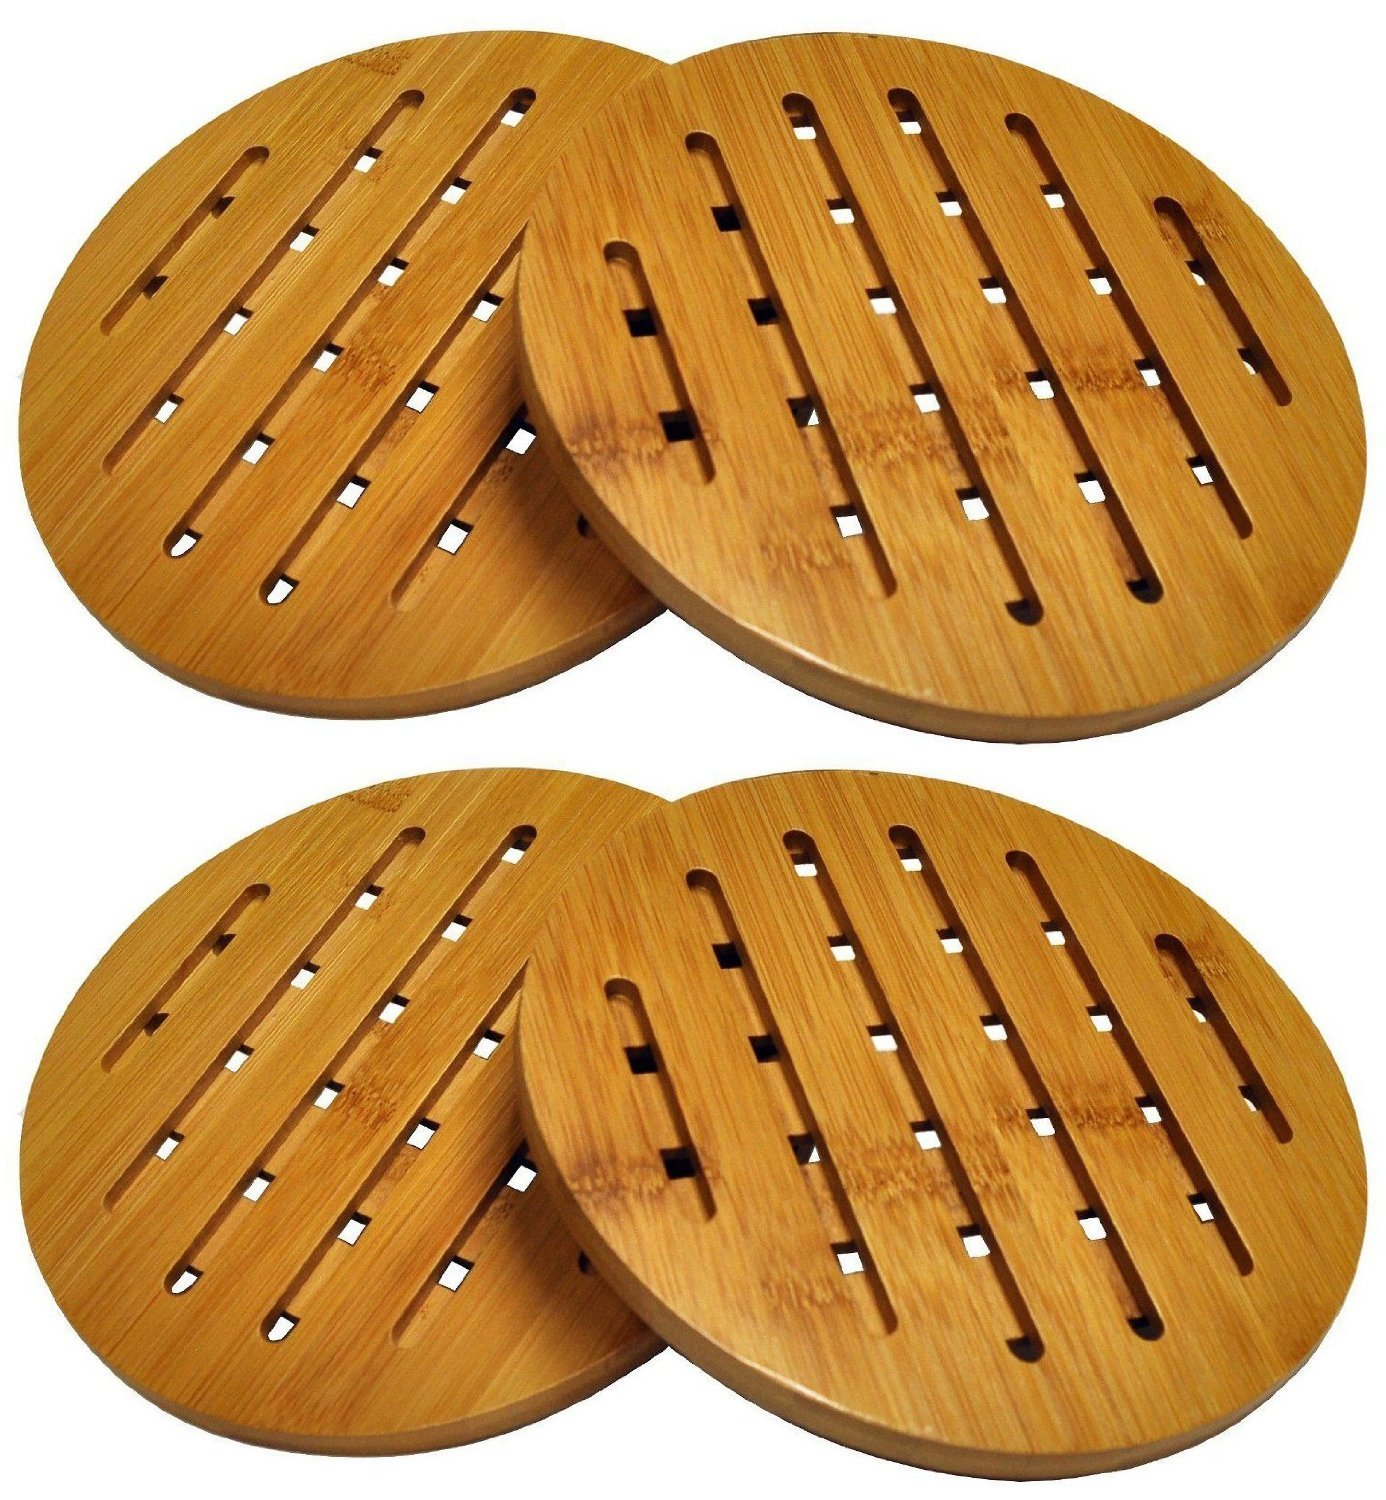 HealthPro Organic Moso Bamboo Collection Heavy Duty Trivet Set (4) by ProHealth